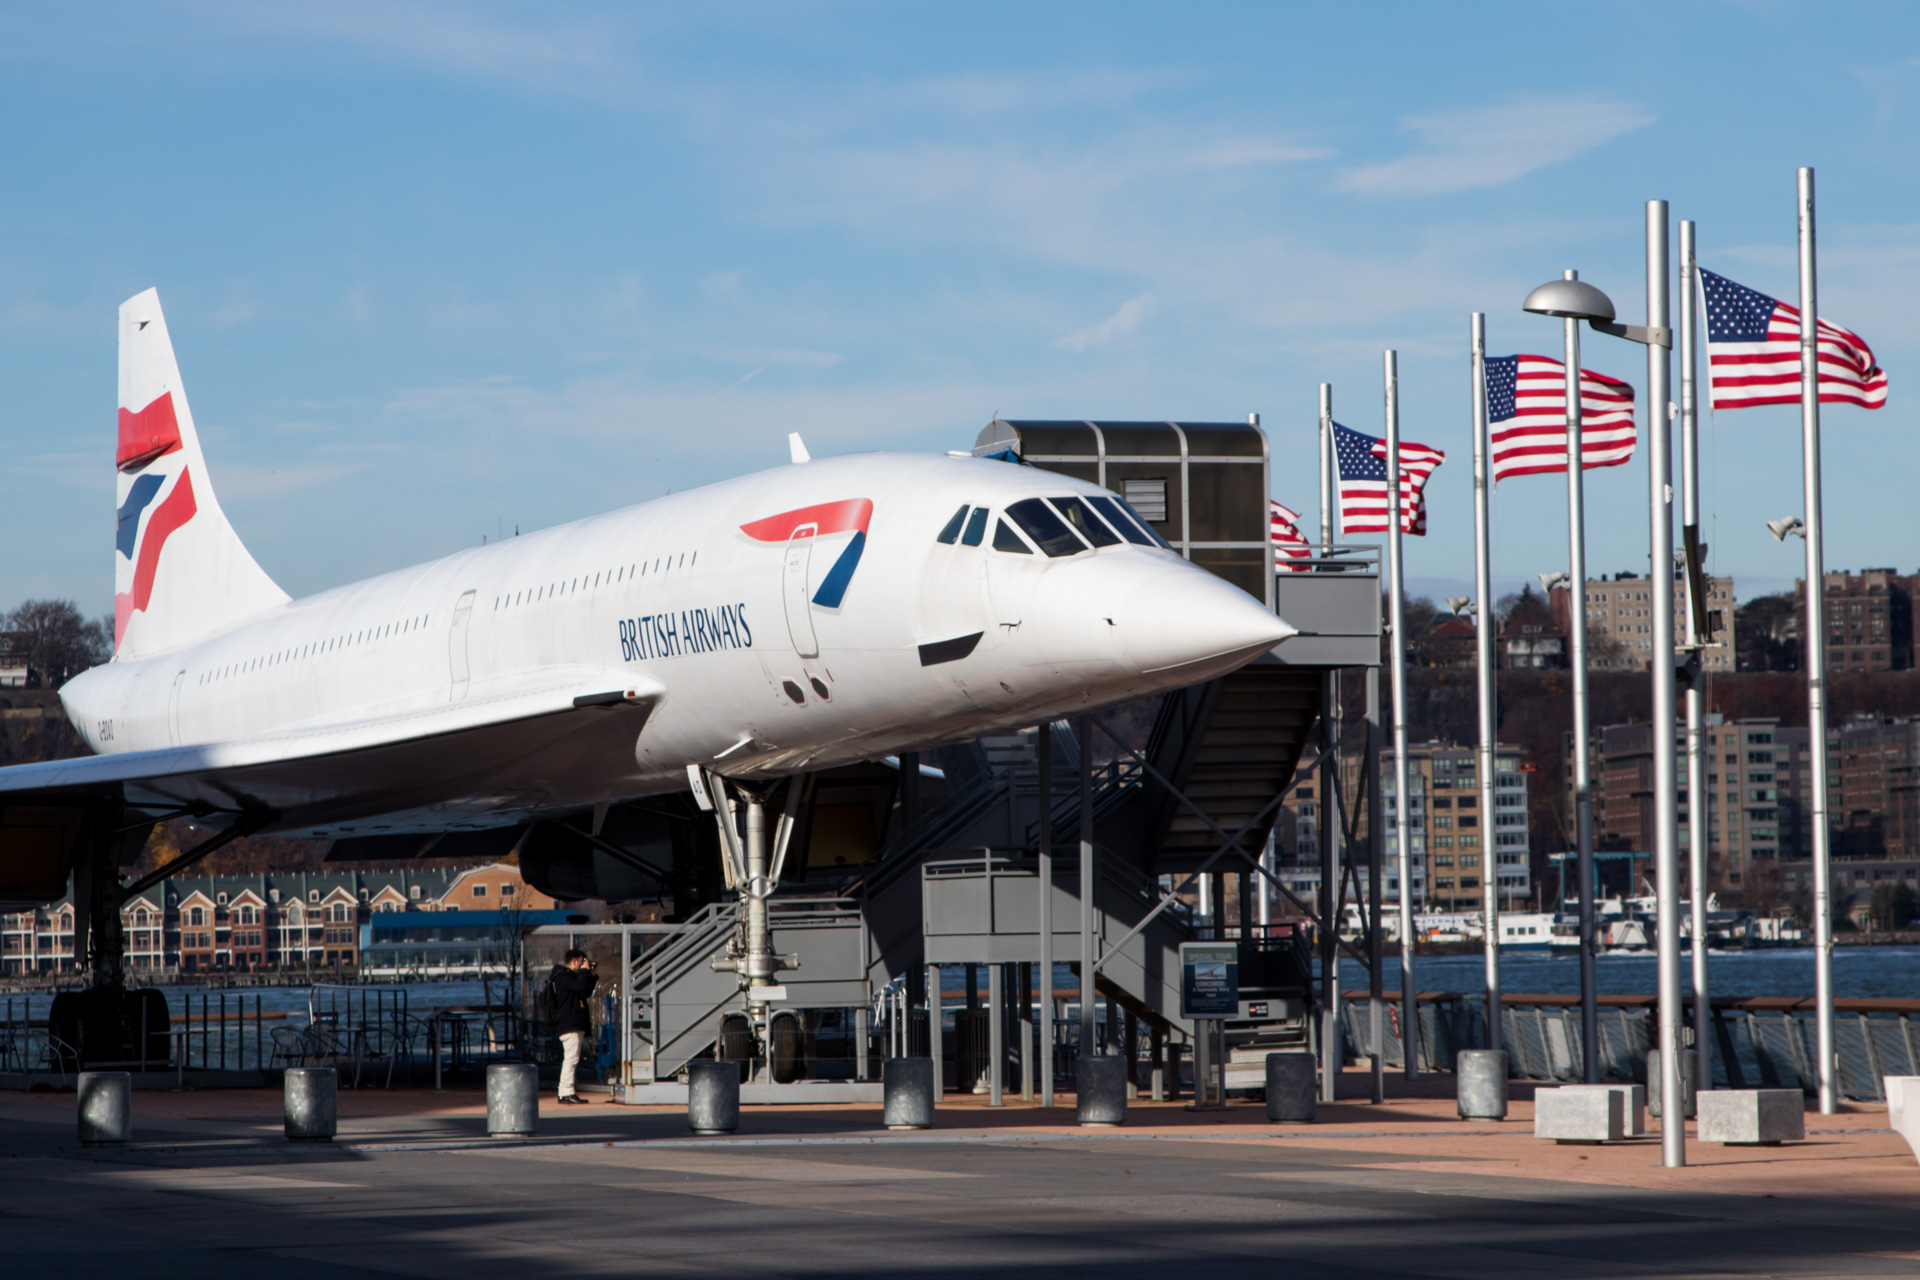 Concorde - The Fastest Passenger Plane in History